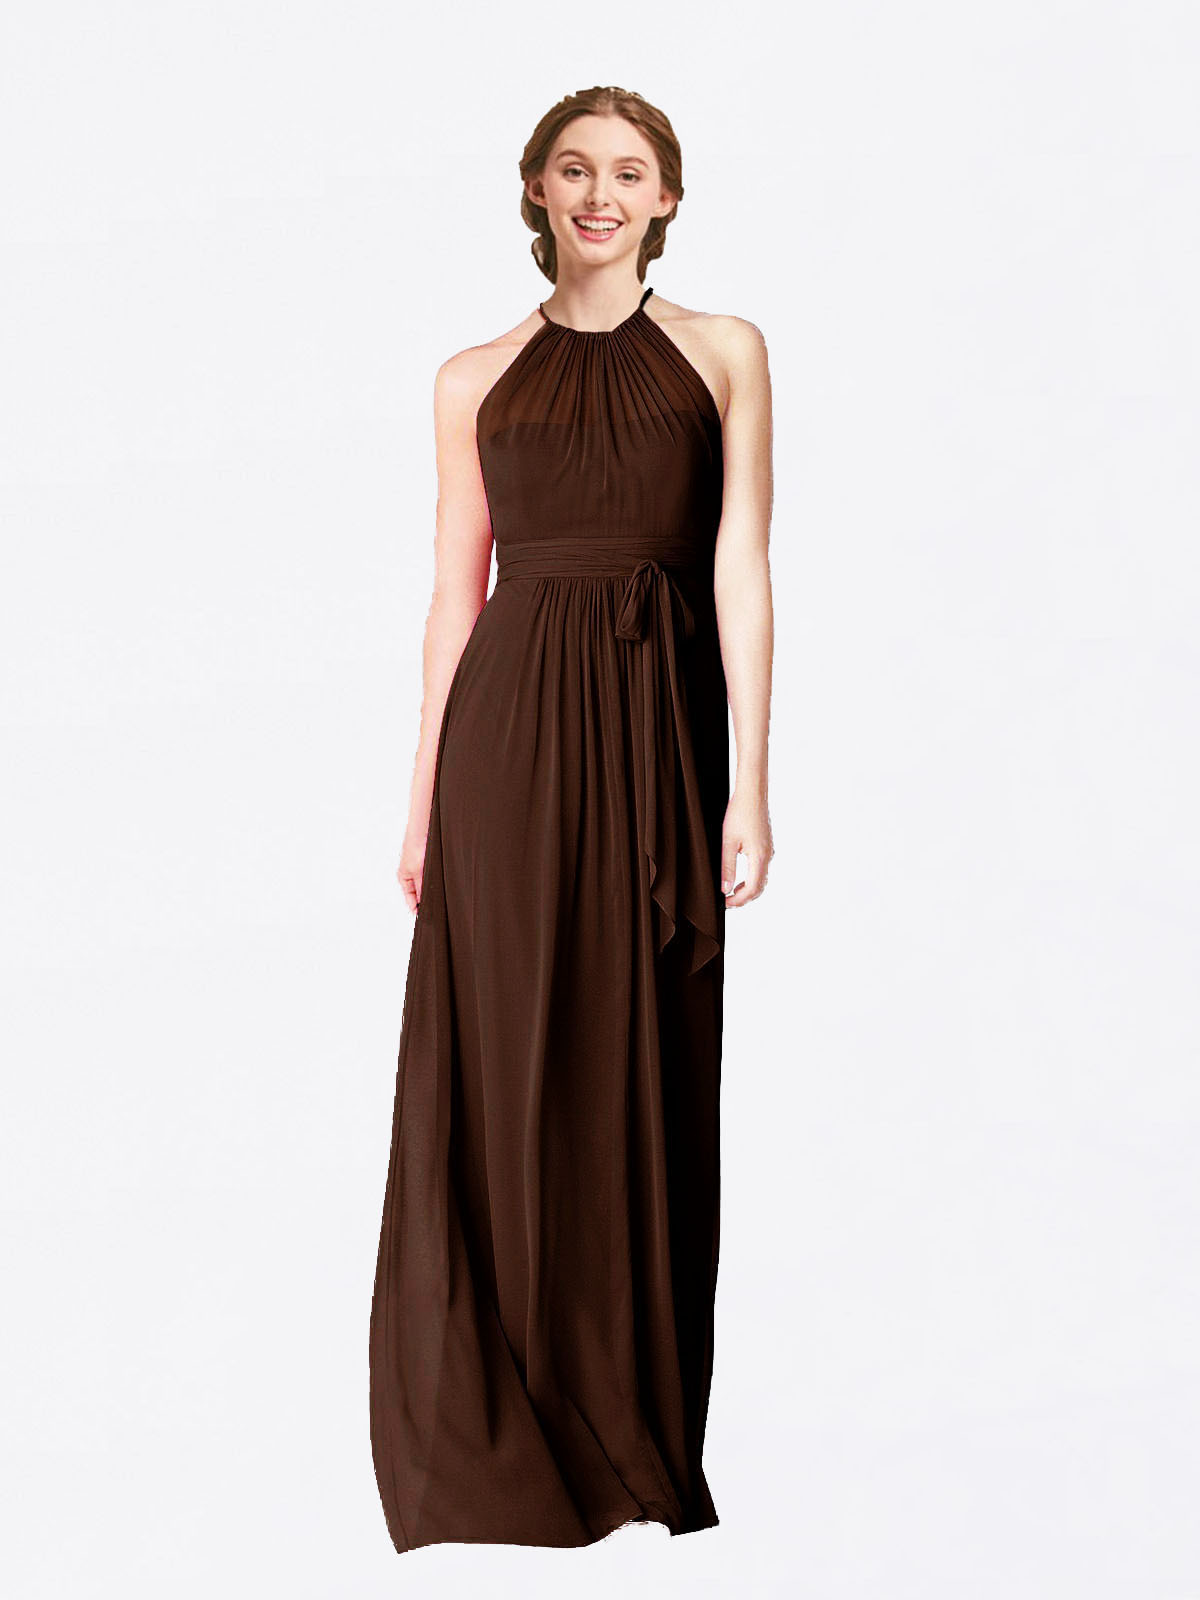 Long A-Line Halter Sleeveless Chocolate Chiffon Bridesmaid Dress Laura